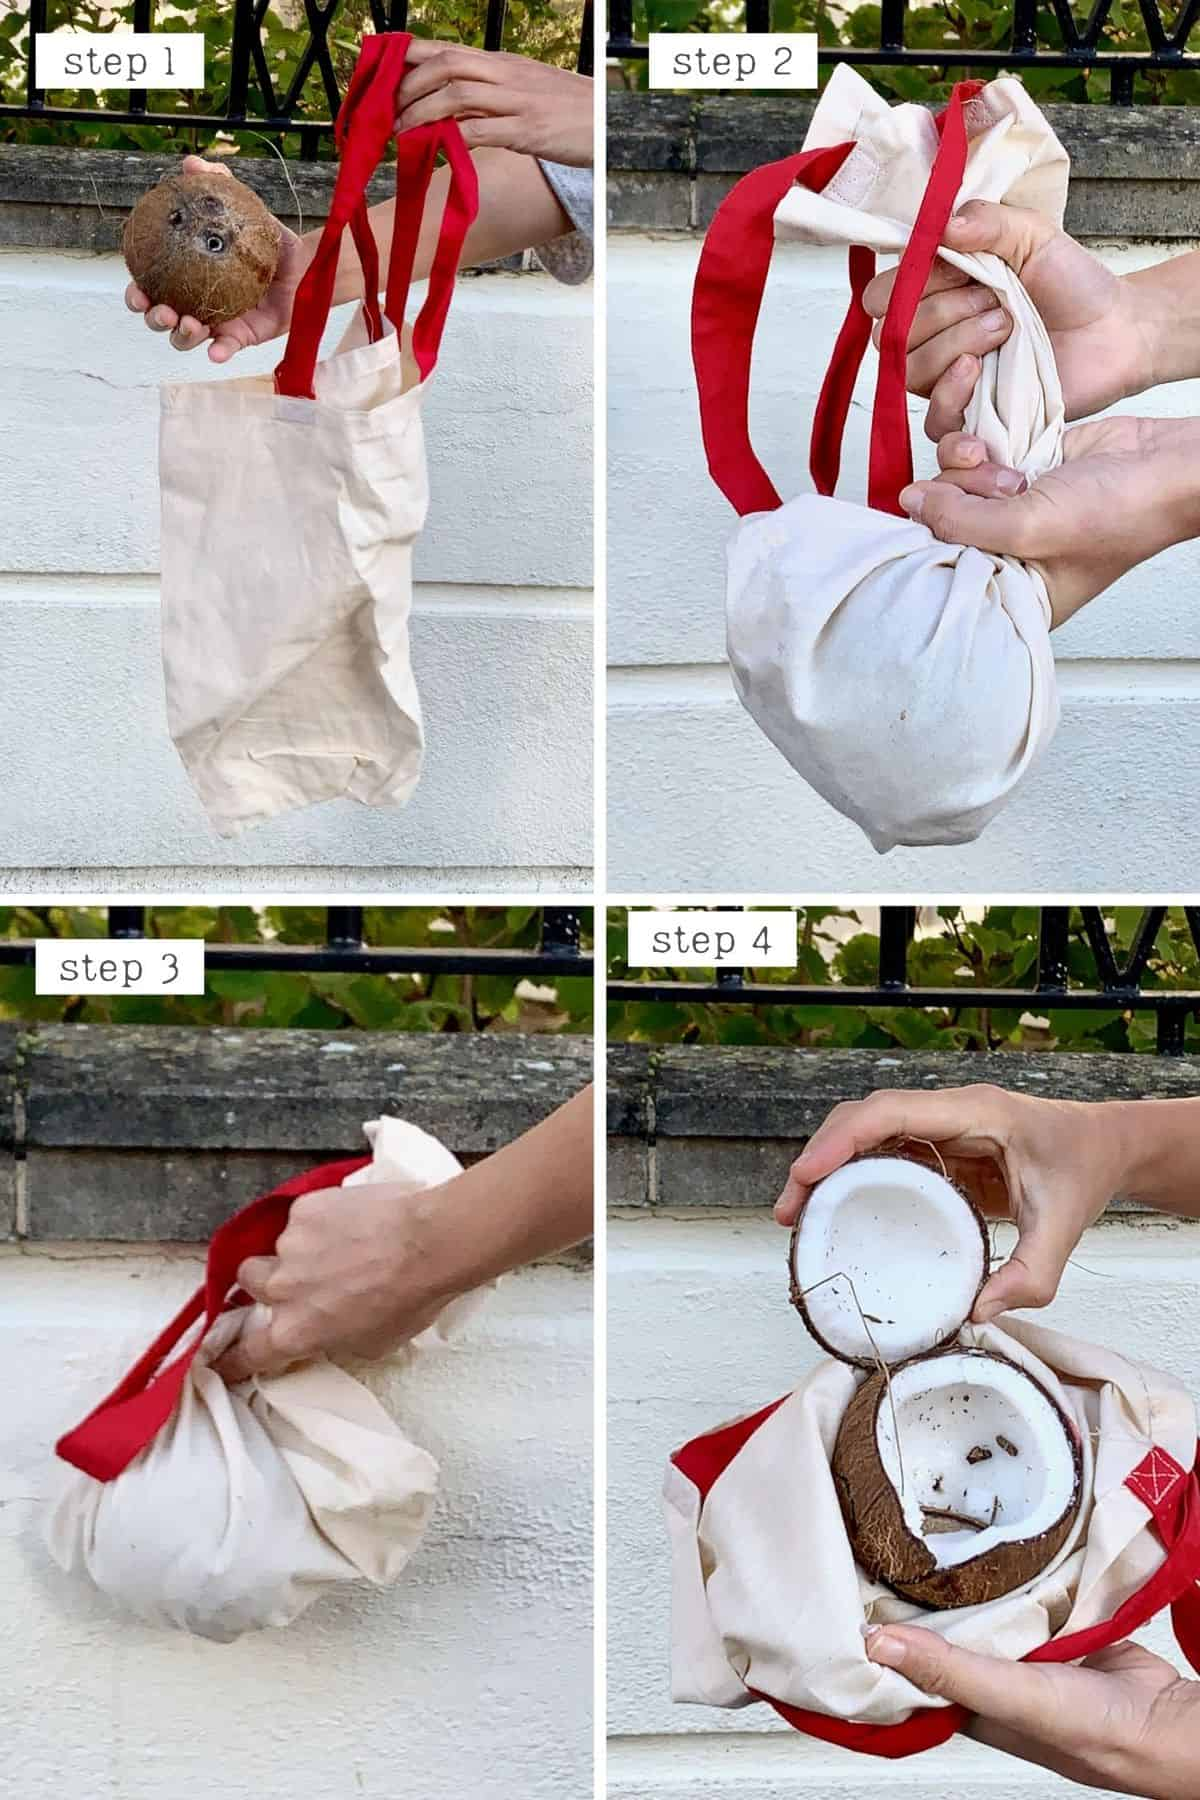 Steps for opening a coconut using the Bang method